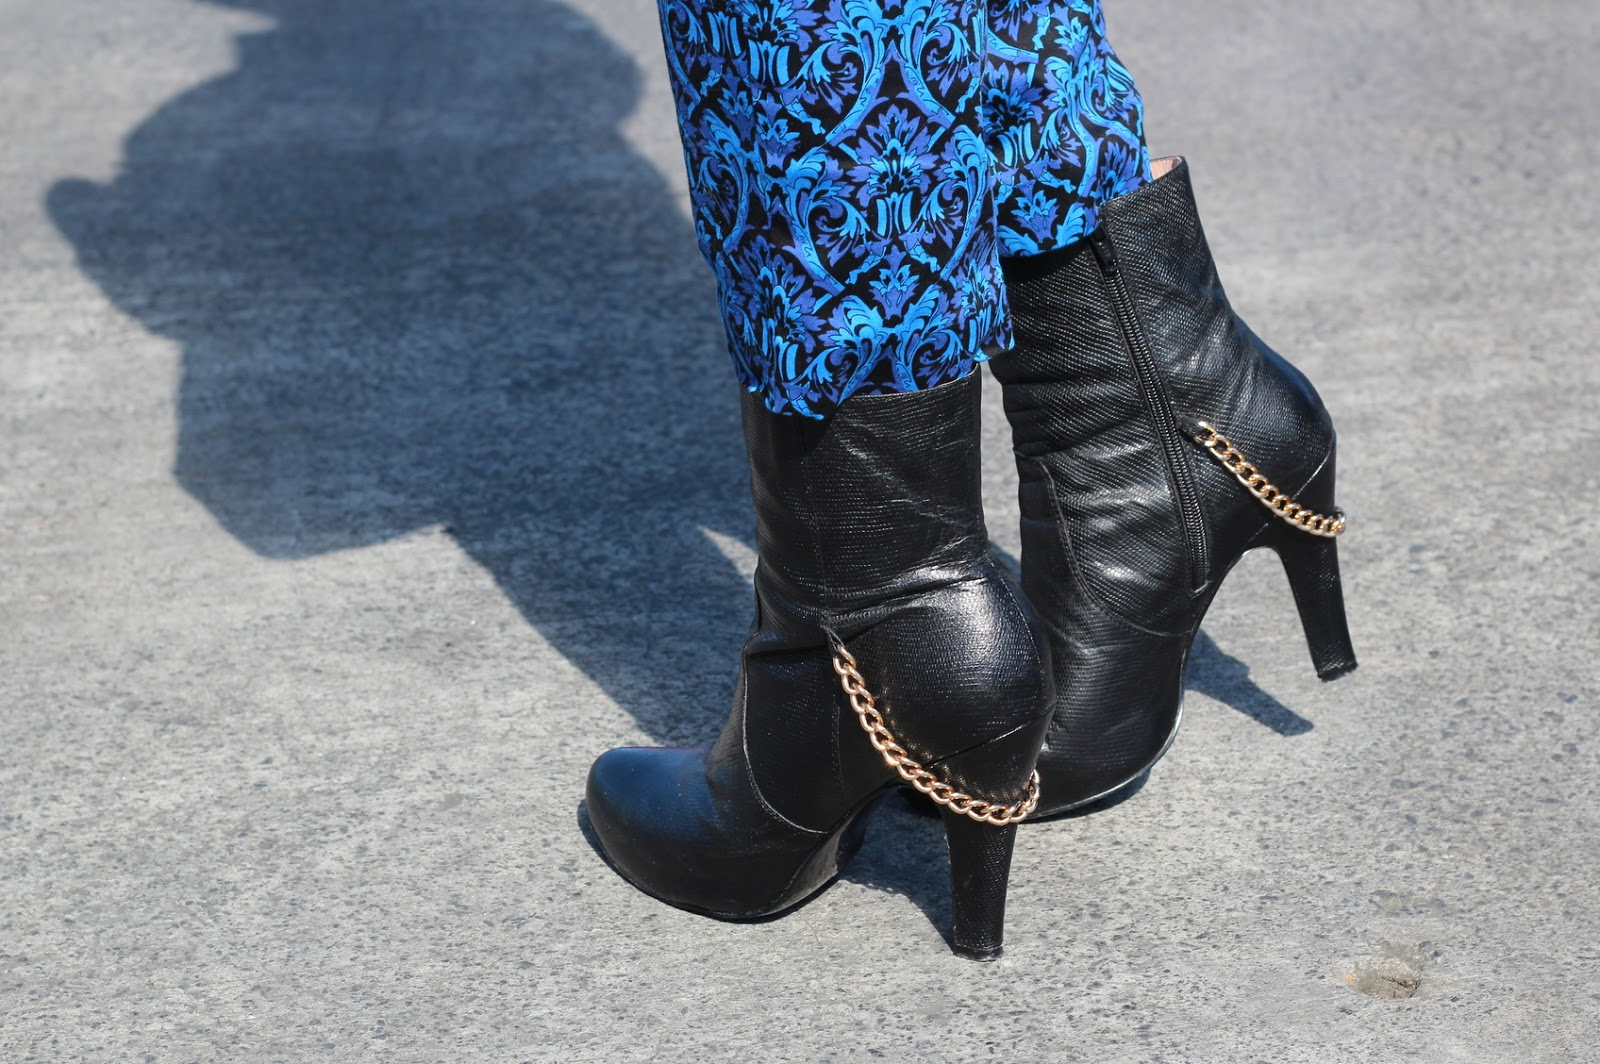 kathryn wilson boots with chain detailing